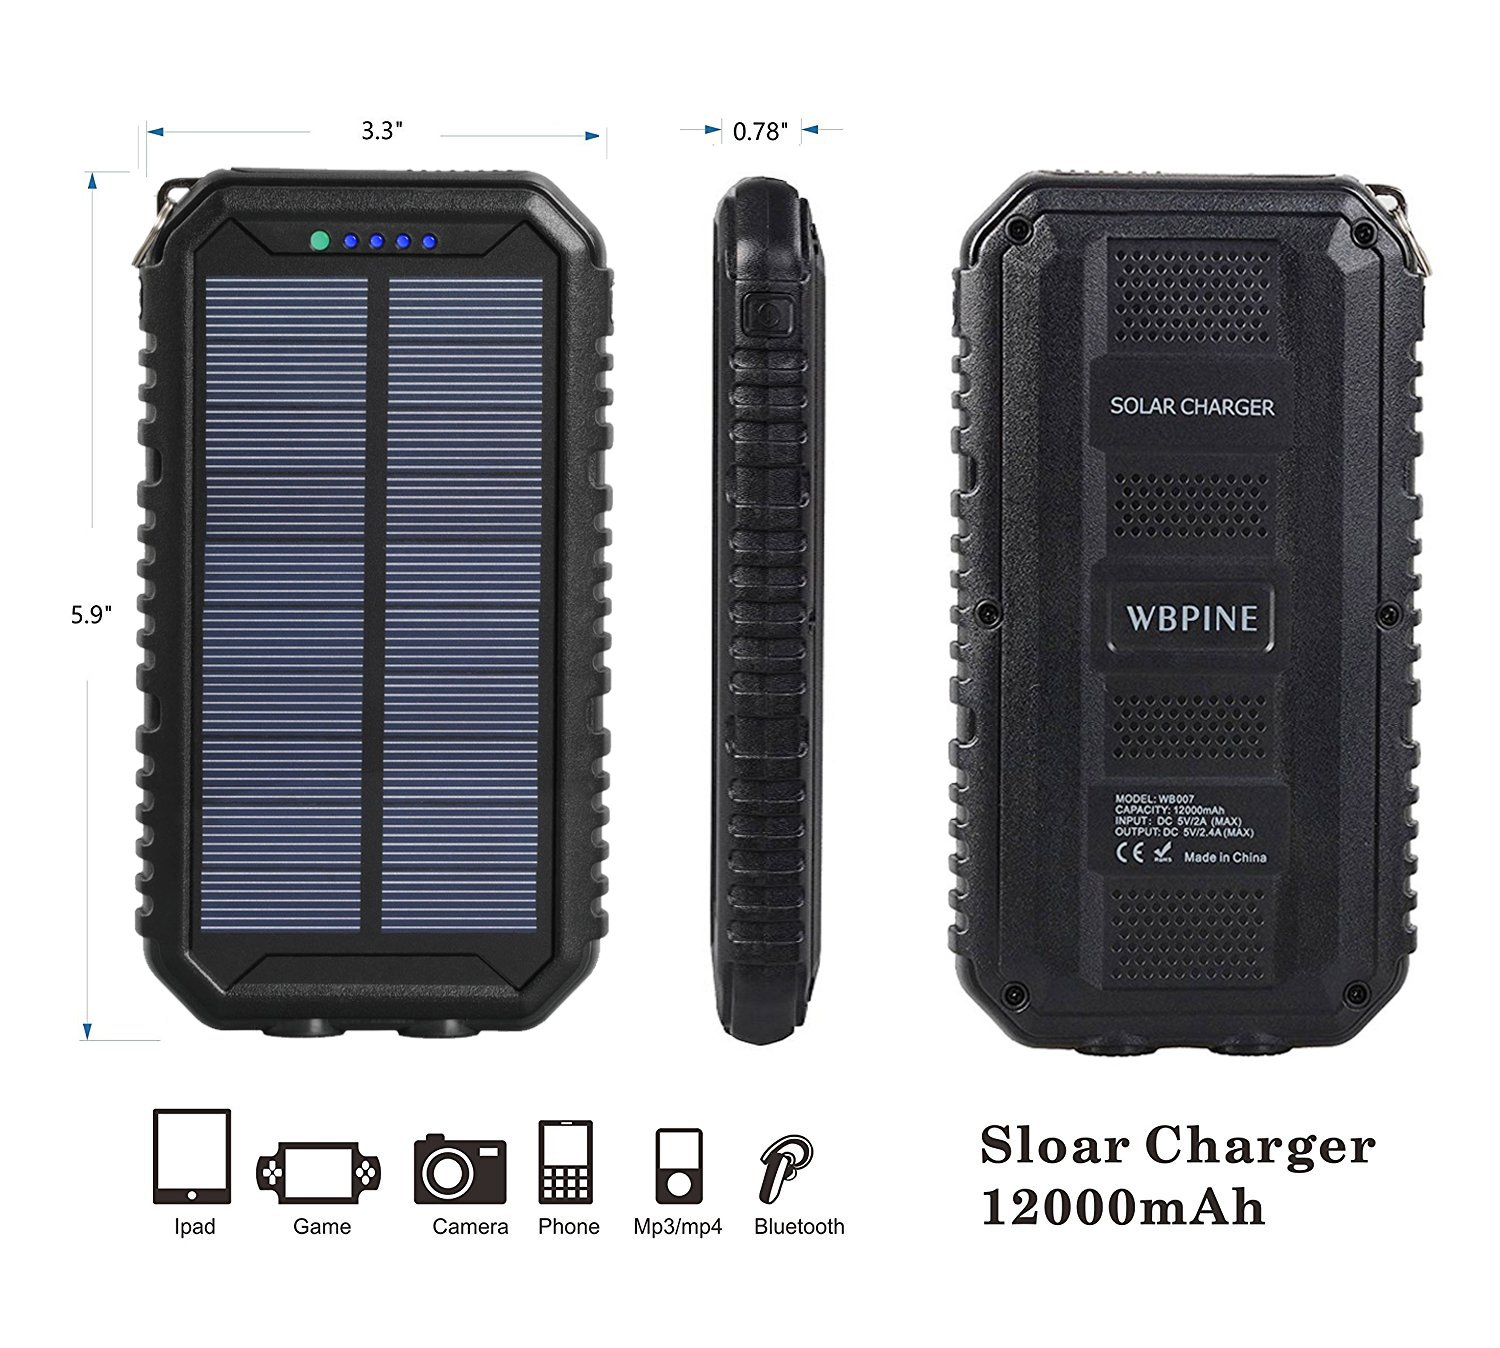 Solar Charger 12000mAh WBPINE Portable Solar Power Bank Shockproof/Dustproof/Waterproof Dual USB 2 LED Flashlights Cellphone More by WBPINE (Image #4)